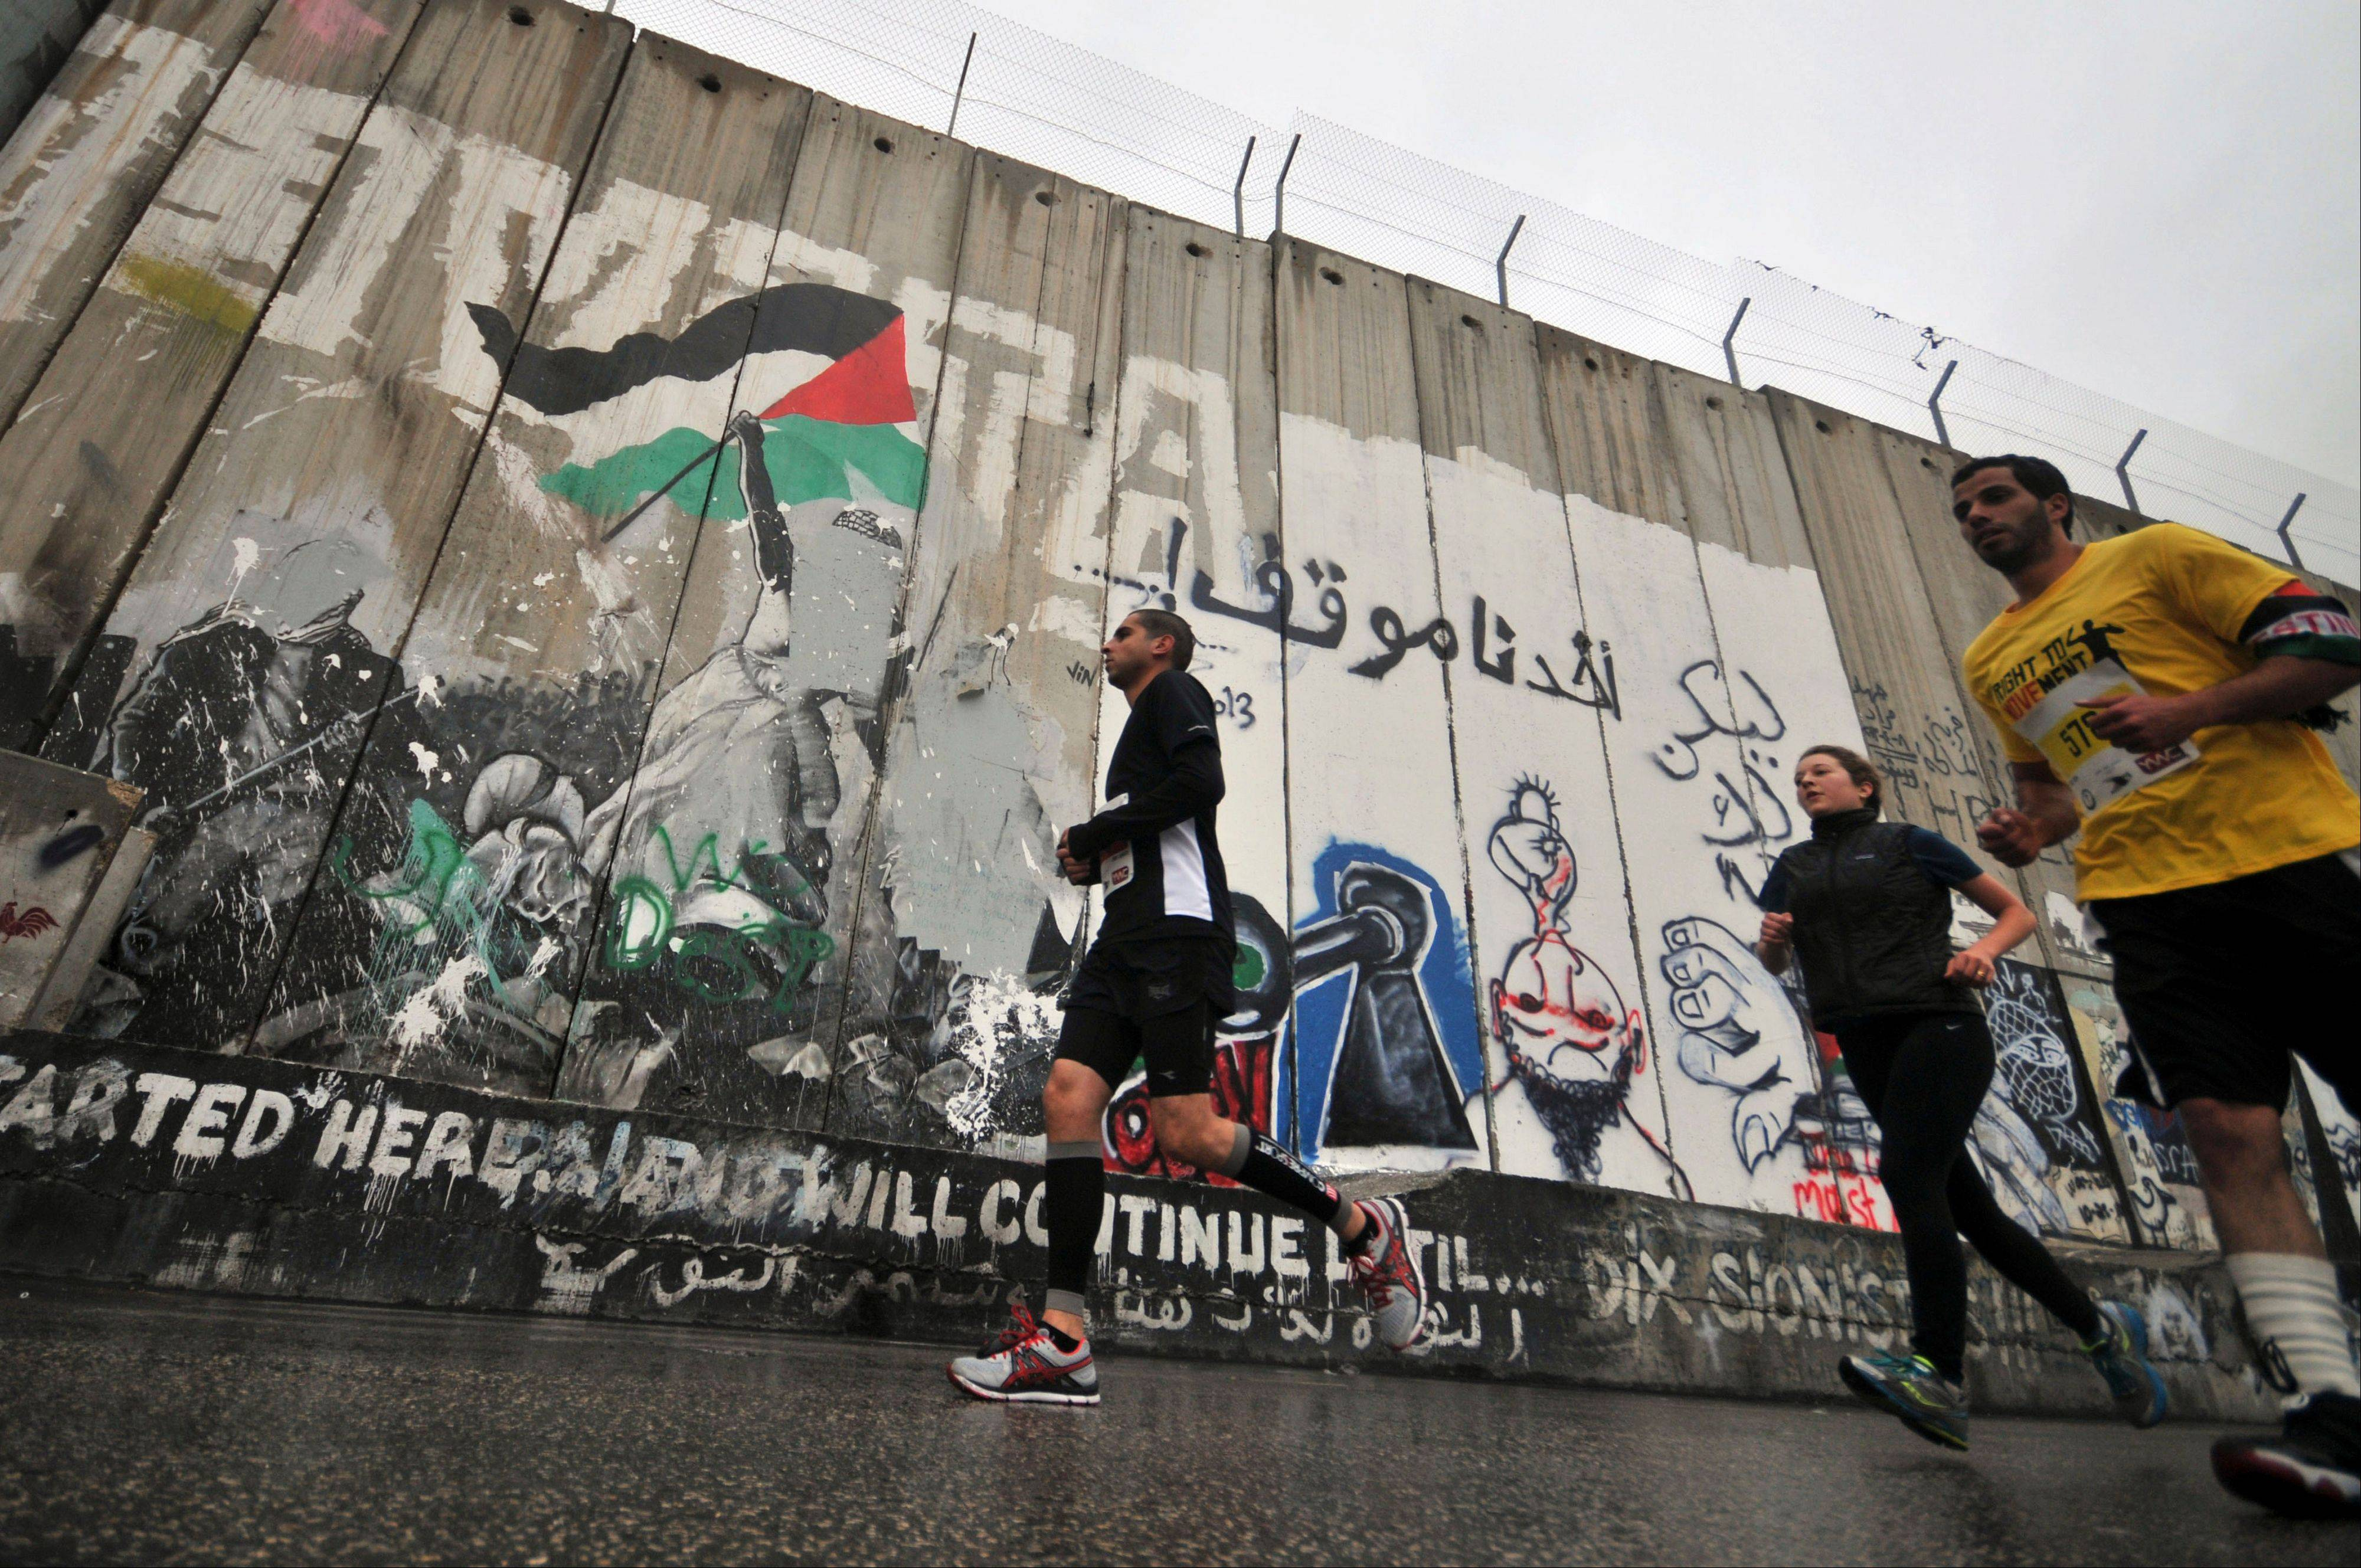 People run past the separation wall Sunday during the West Bank�s first marathon in Bethlehem. About 1,000 people participated in the race, which included shorter 10-kilometer and 20-kilometer options.